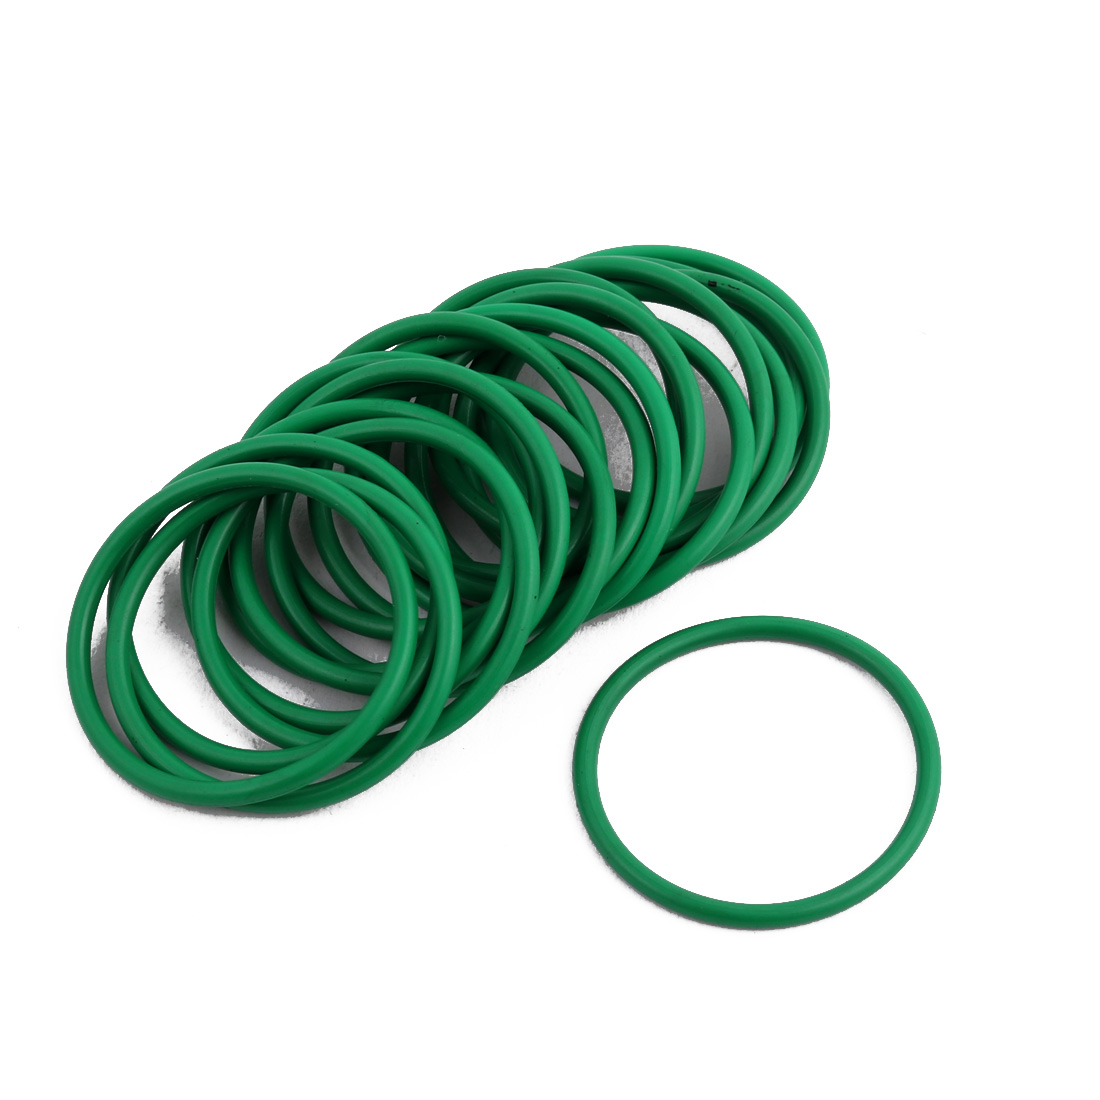 20 Pcs Green 30mm x 1.9mm NBR Oil Resistant Sealing Ring O-shape Grommets